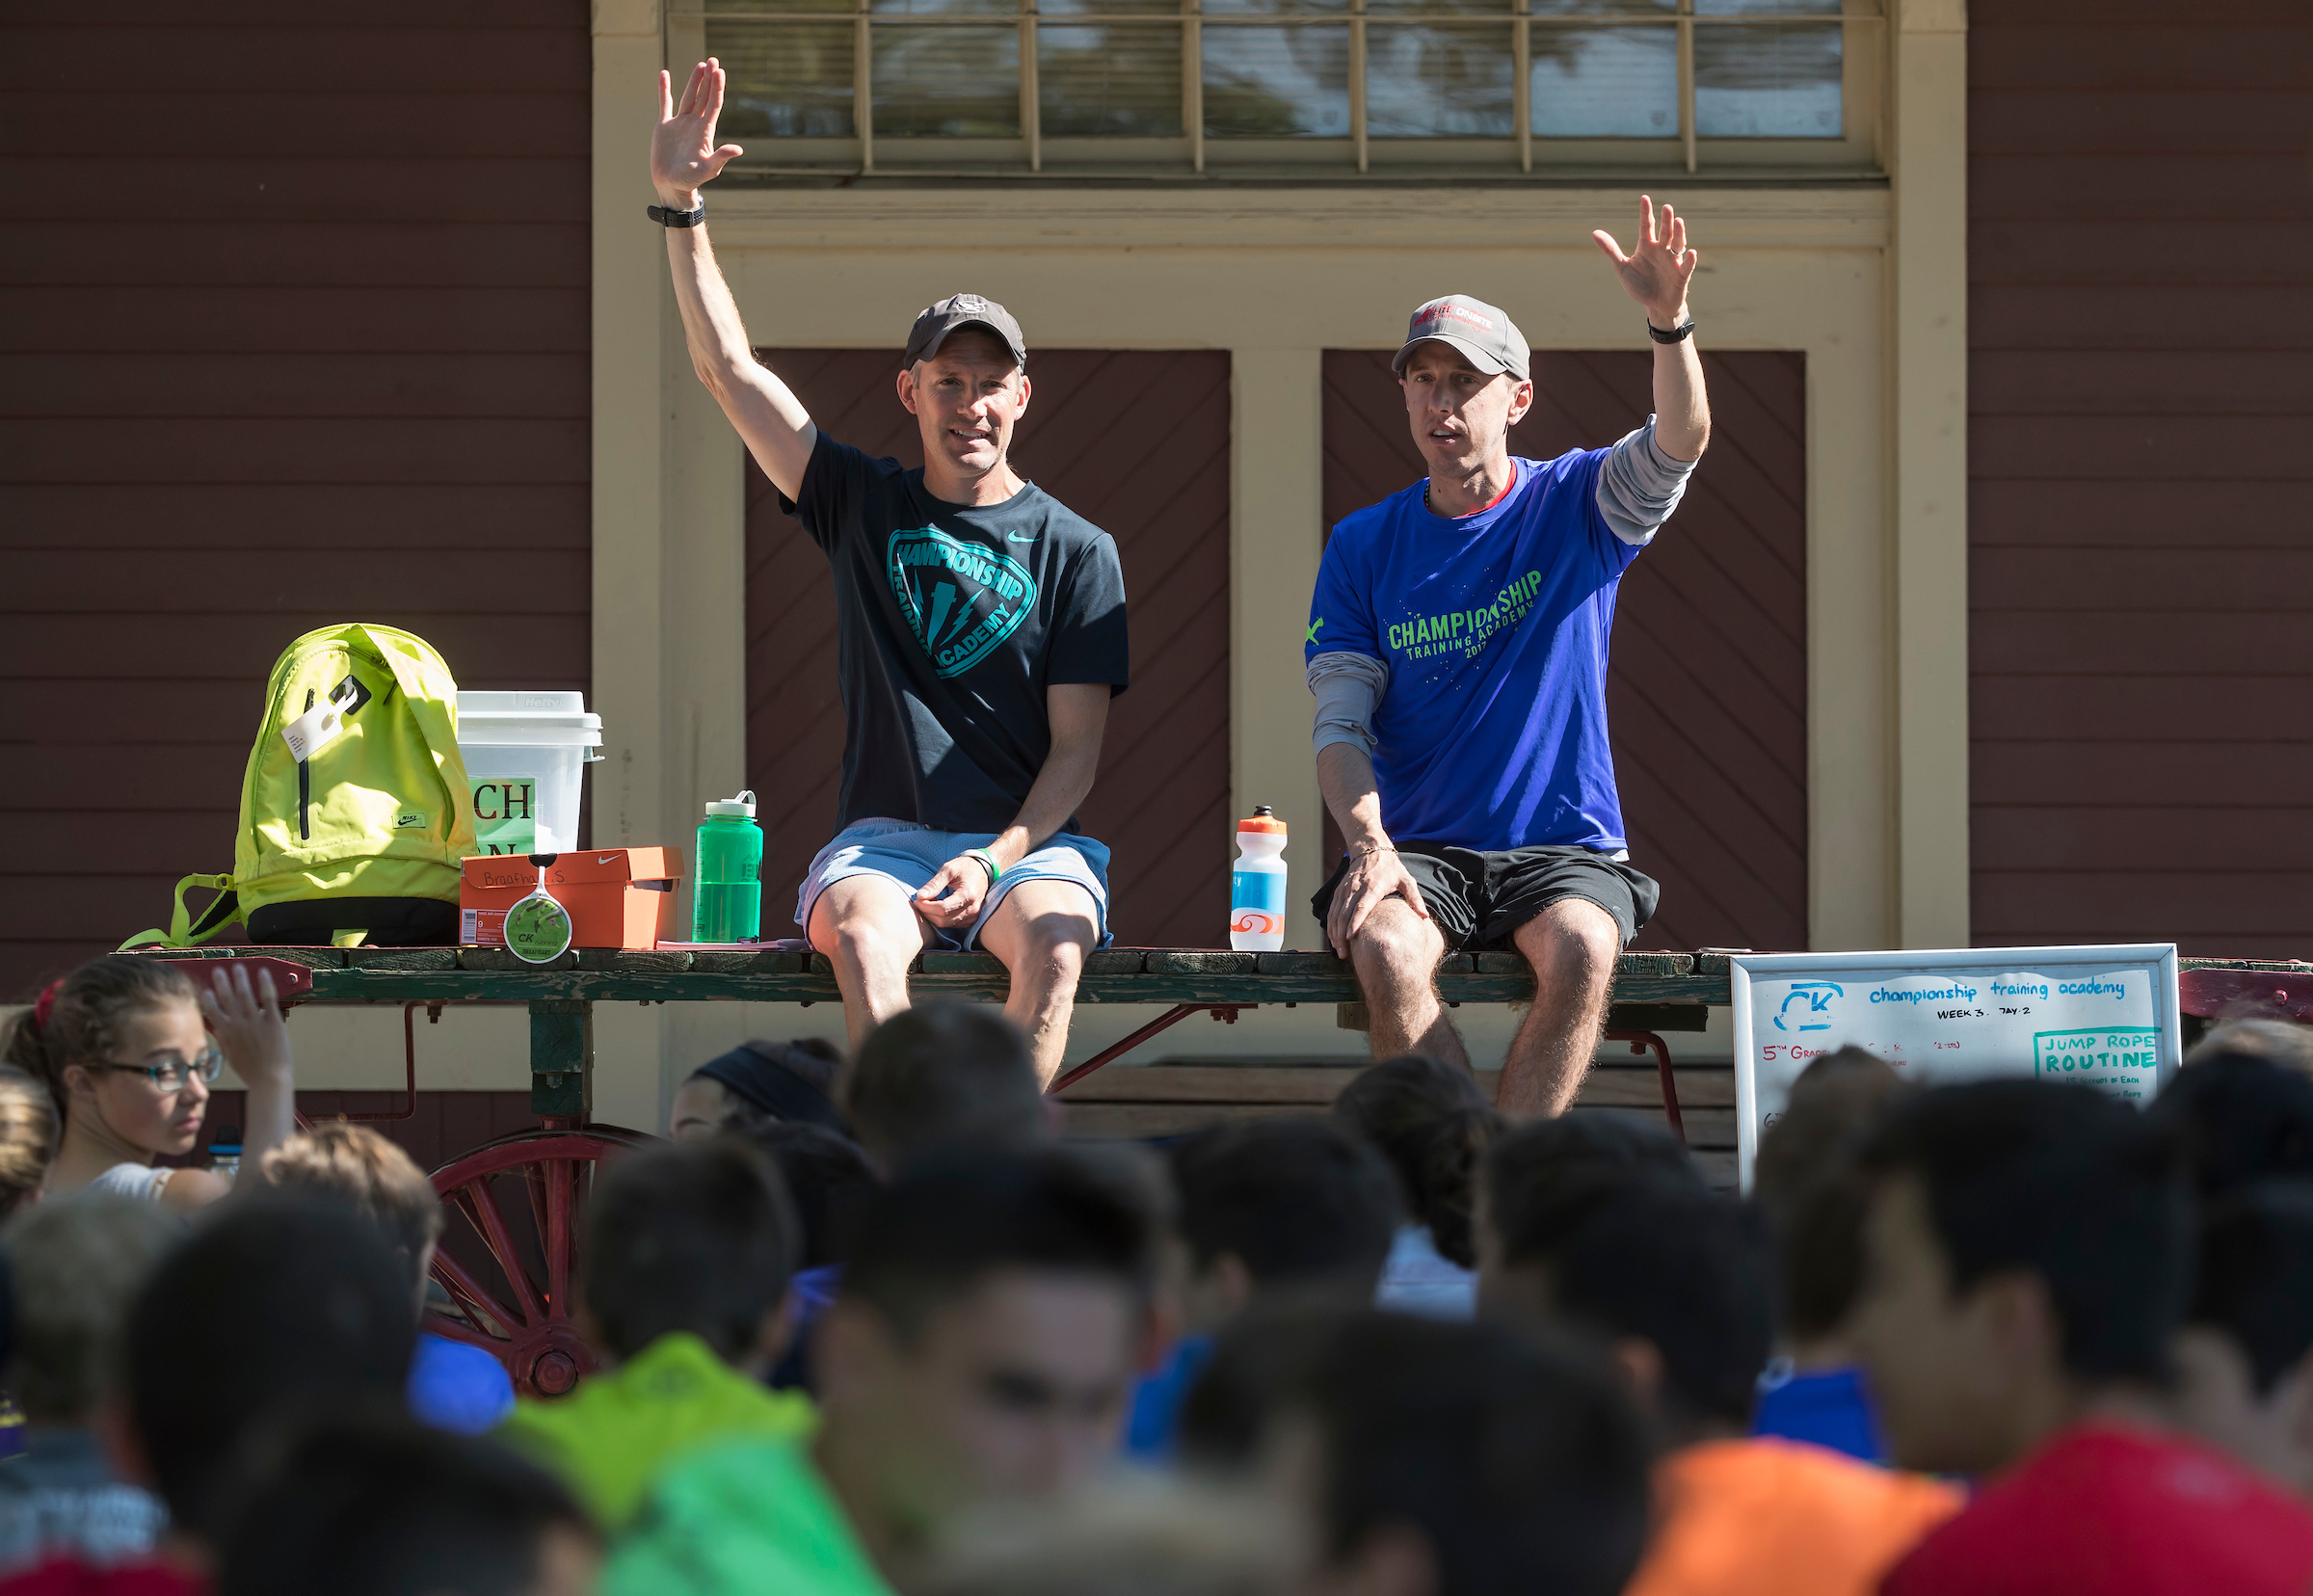 Alan Webb, the American record holder in the mile, came to CTA to inspire young runners